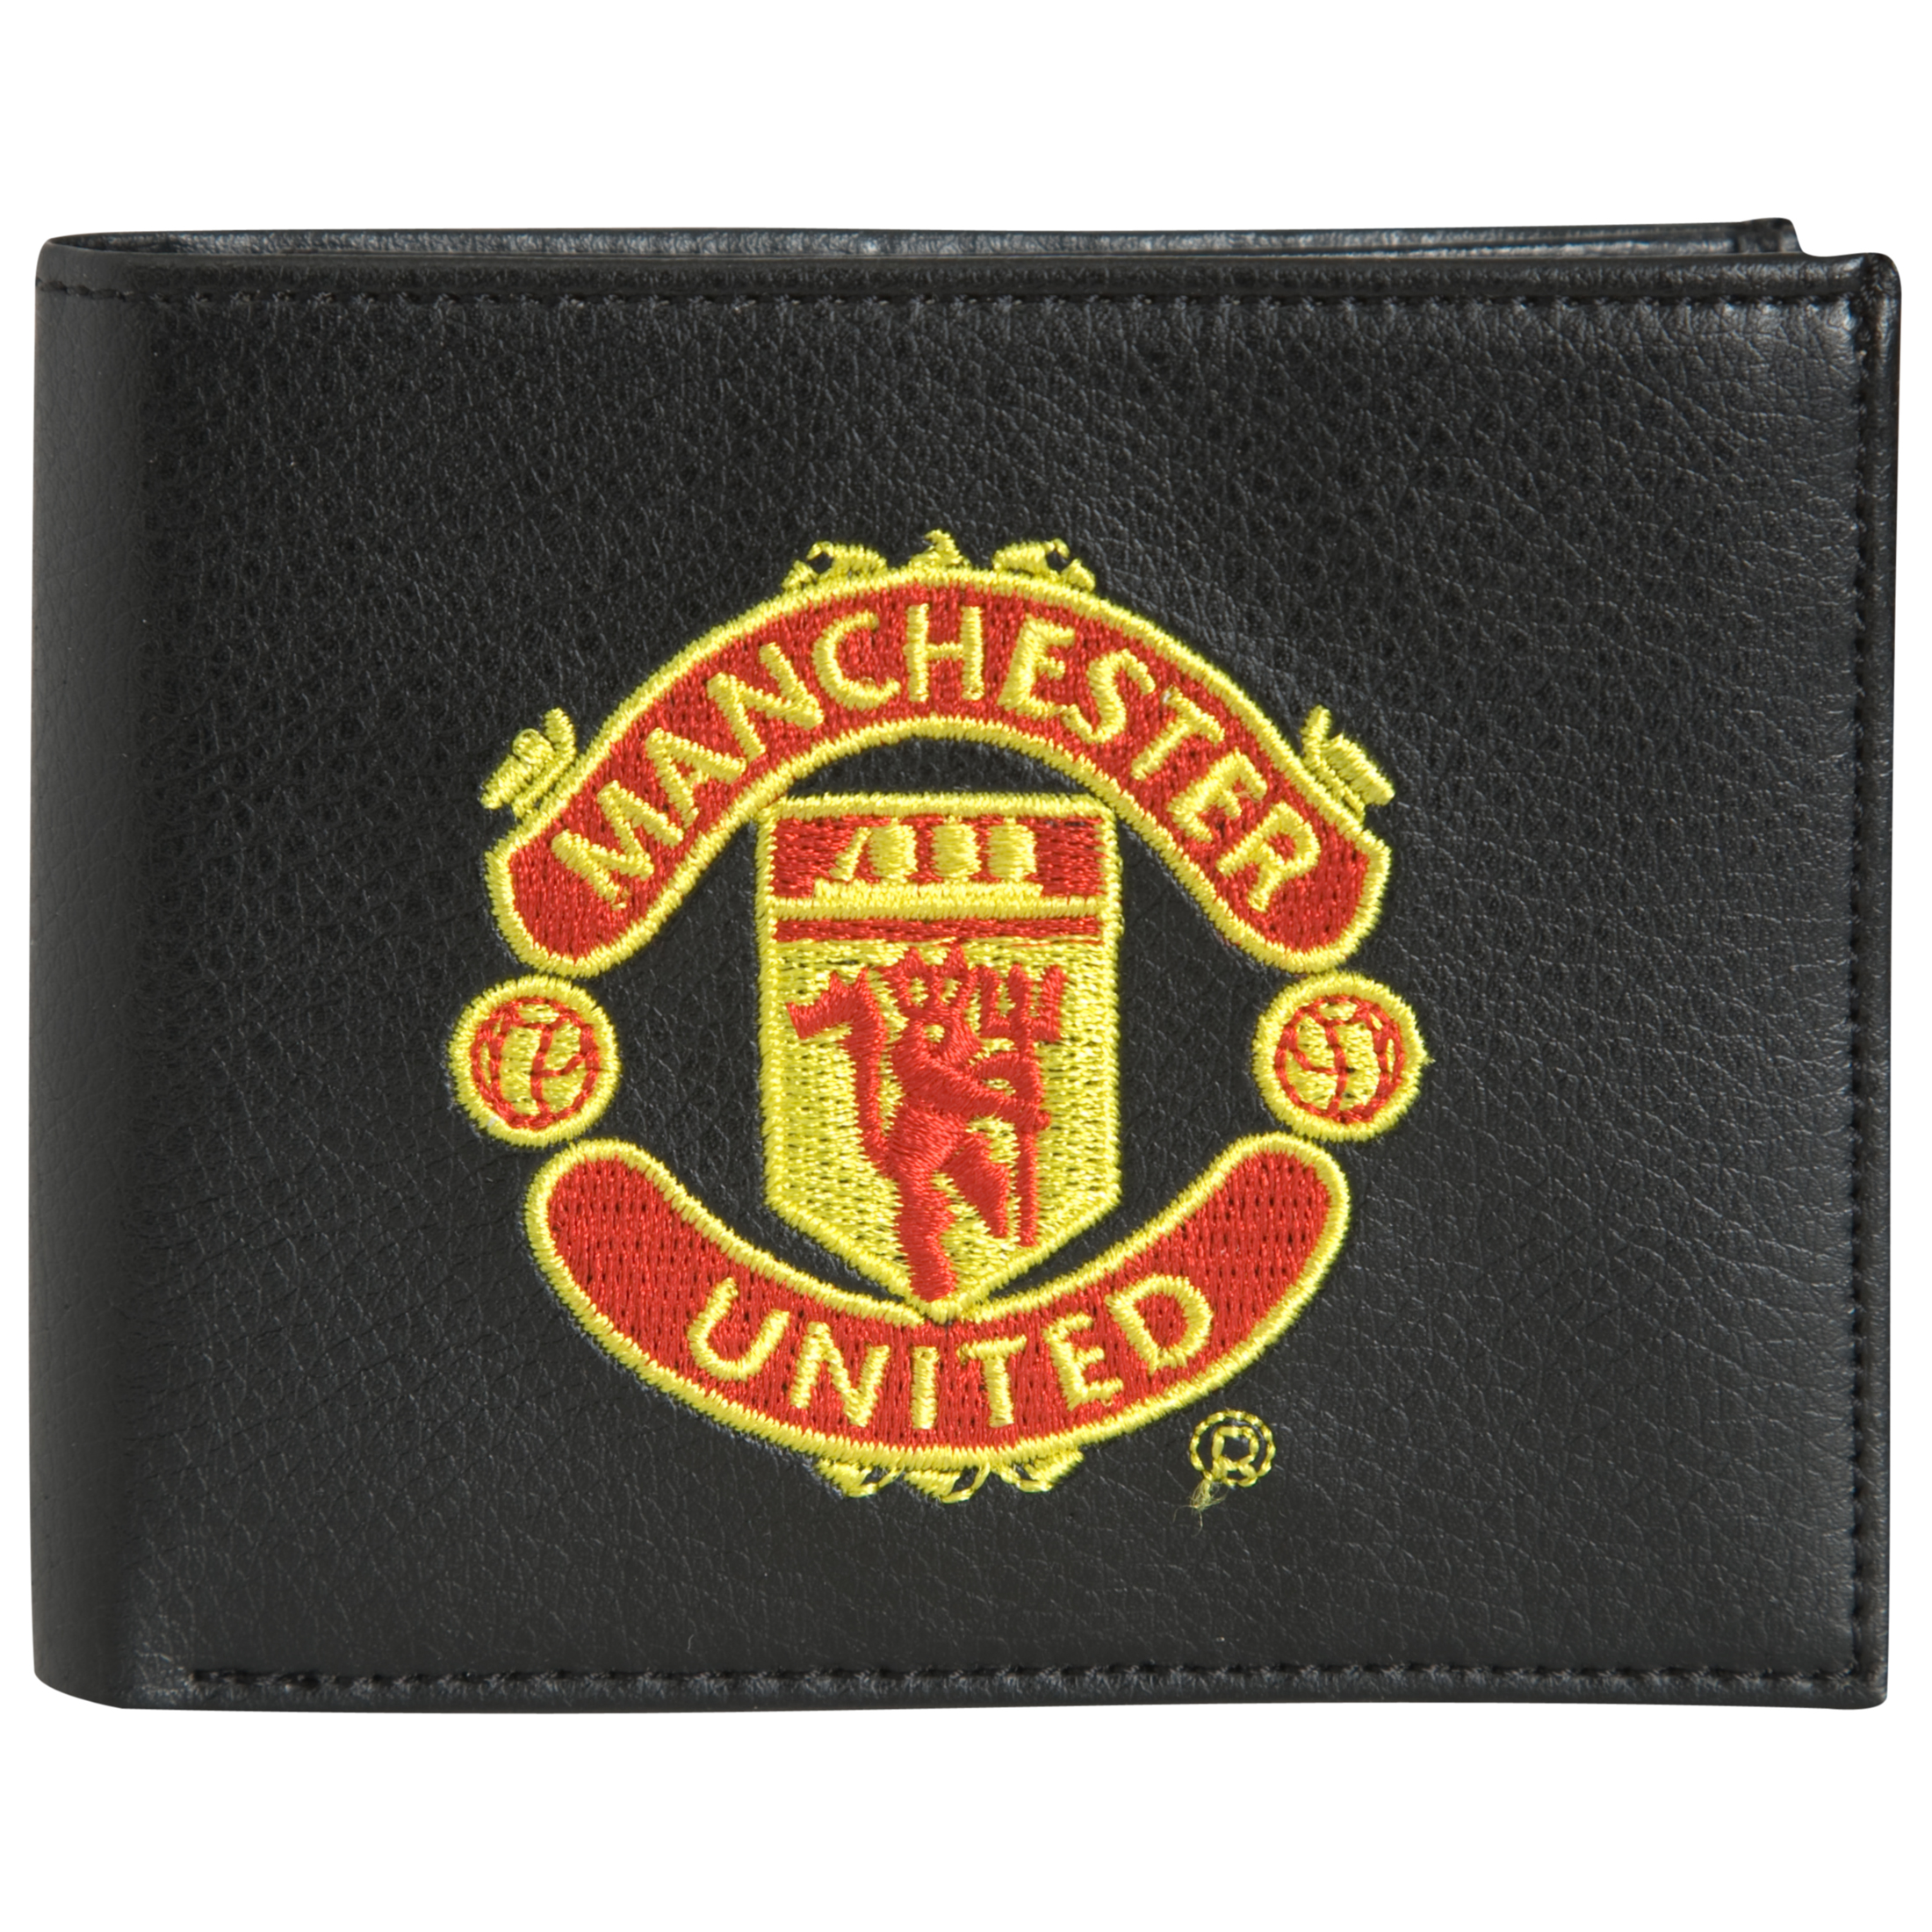 Manchester United Embroidered Wallet